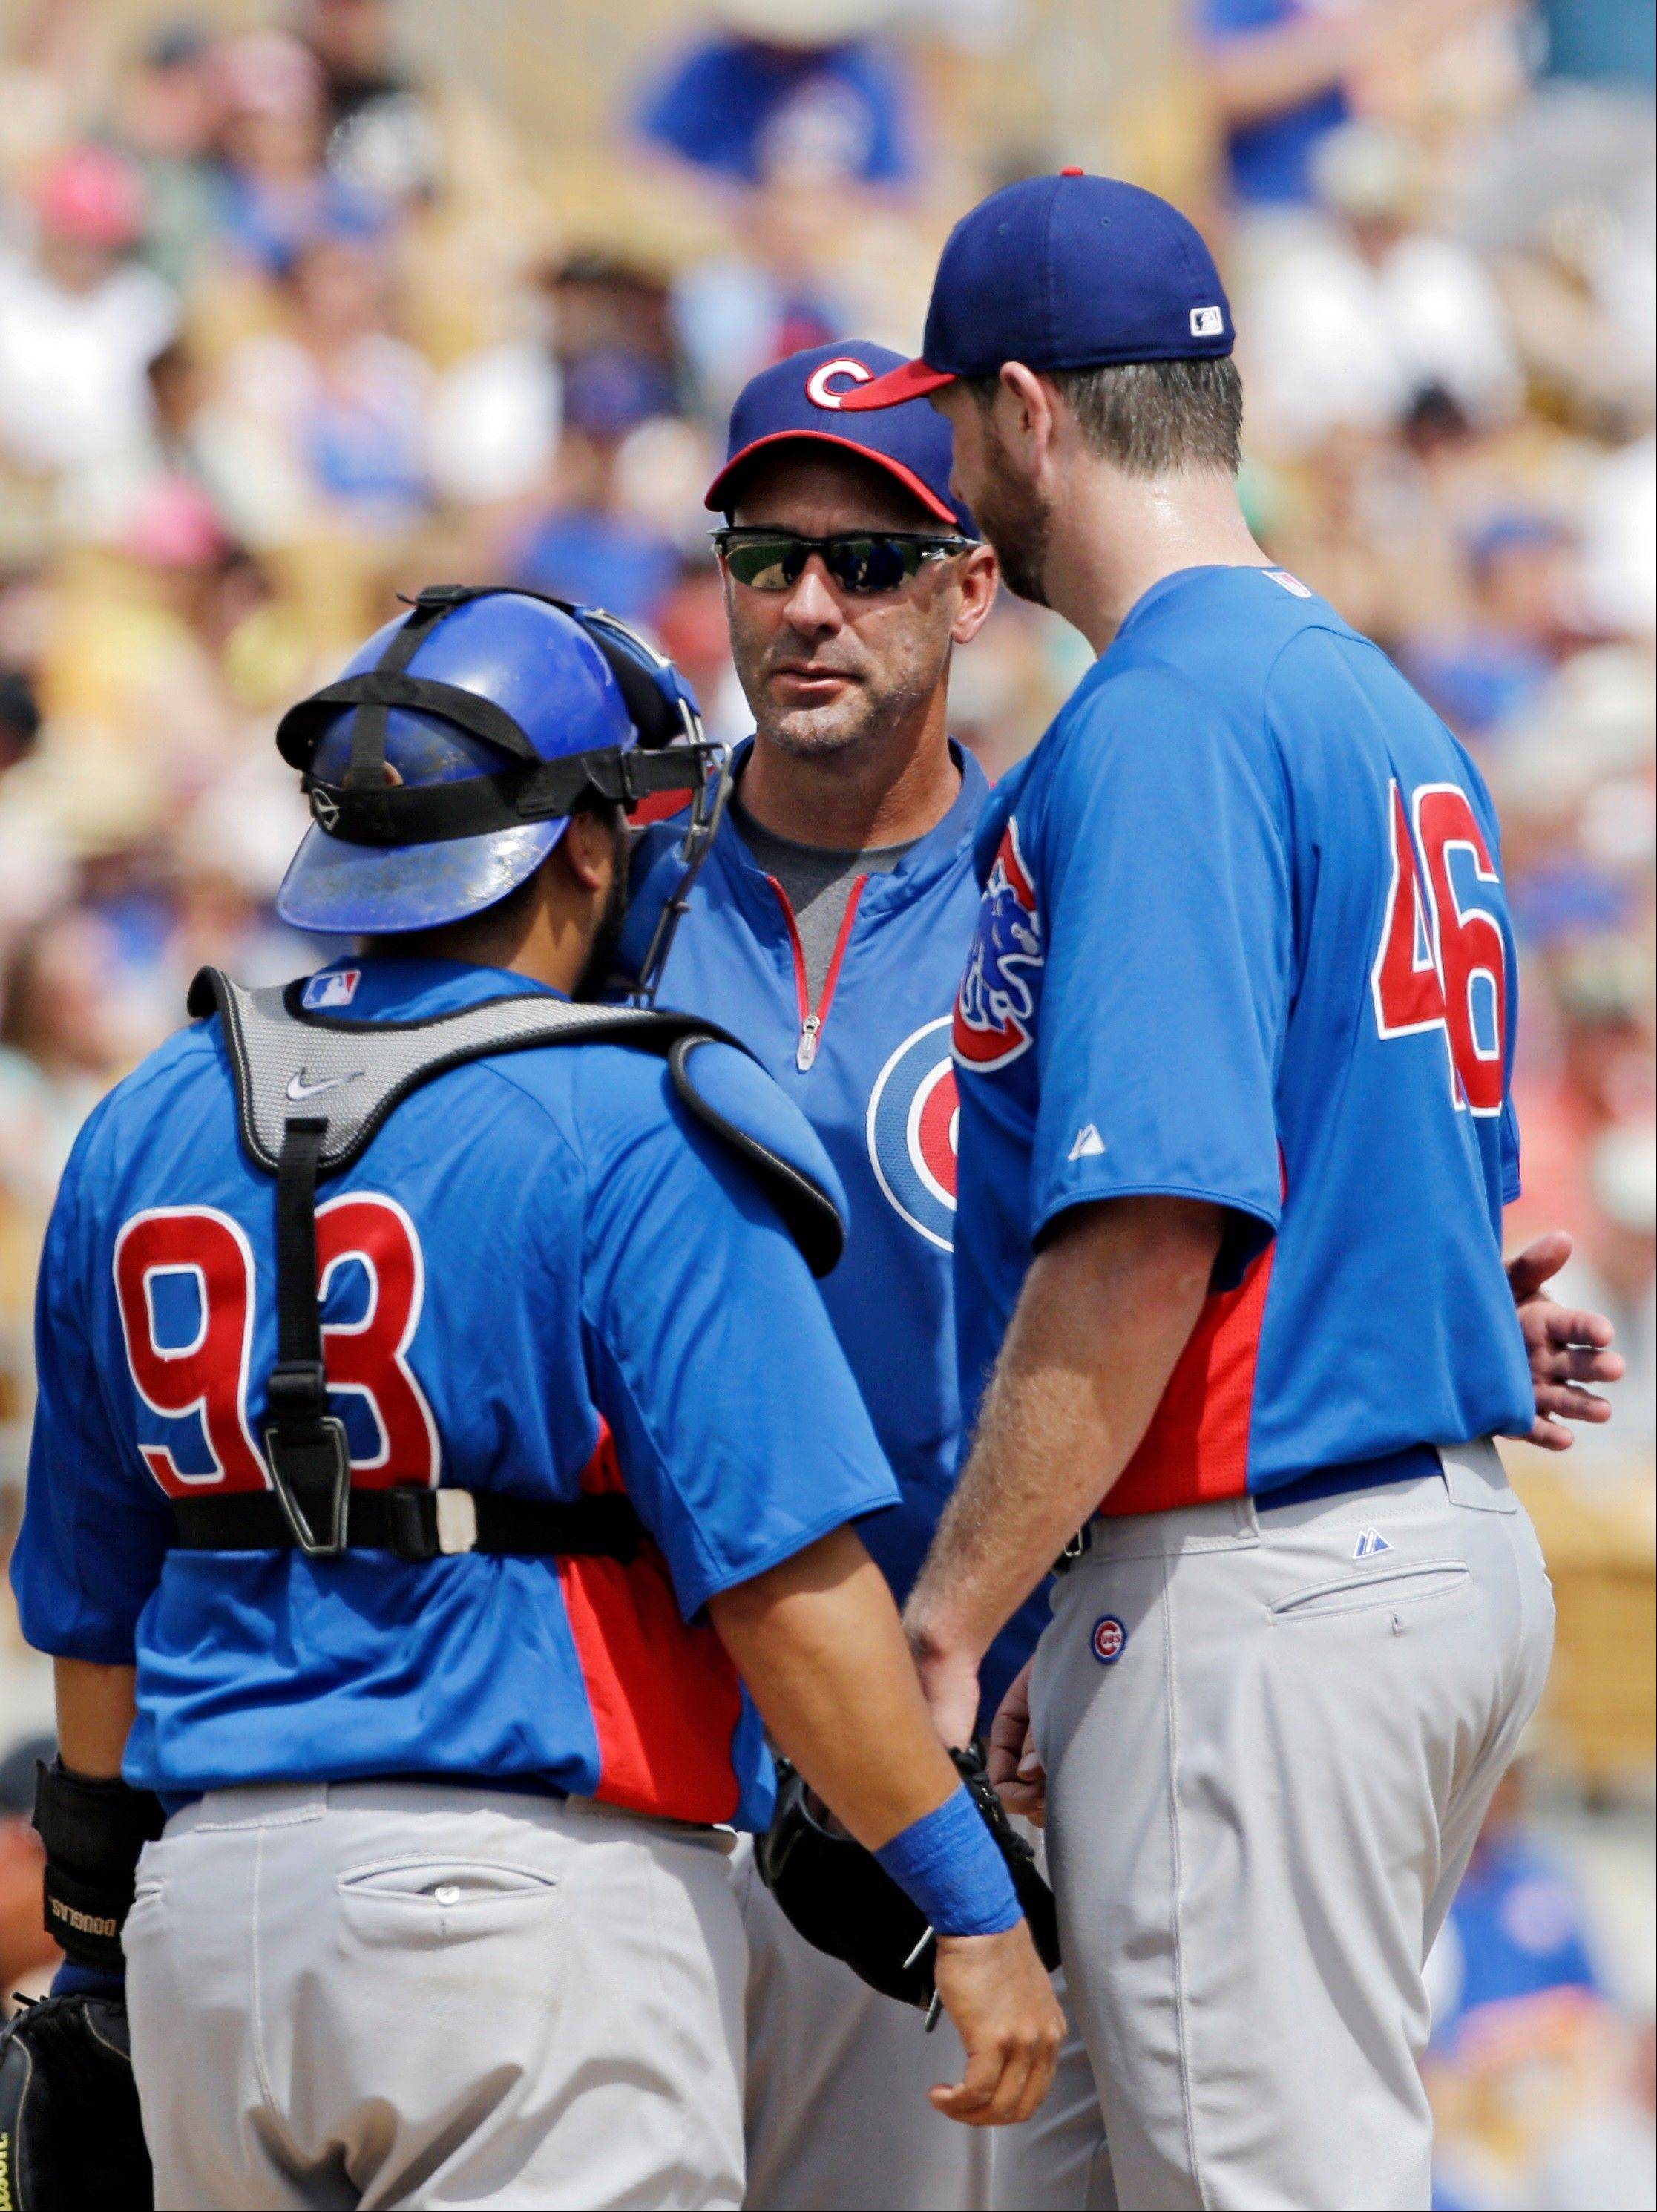 Chicago Cubs manager Dale Sveum, center, takes starting pitcher Scott Feldman out of an exhibition spring training baseball game against the Chicago White Sox in th fourth inning Friday, March 15, 2013, in Glendale, Ariz. Cubs catcher Dioner Navarro (93) listens in.